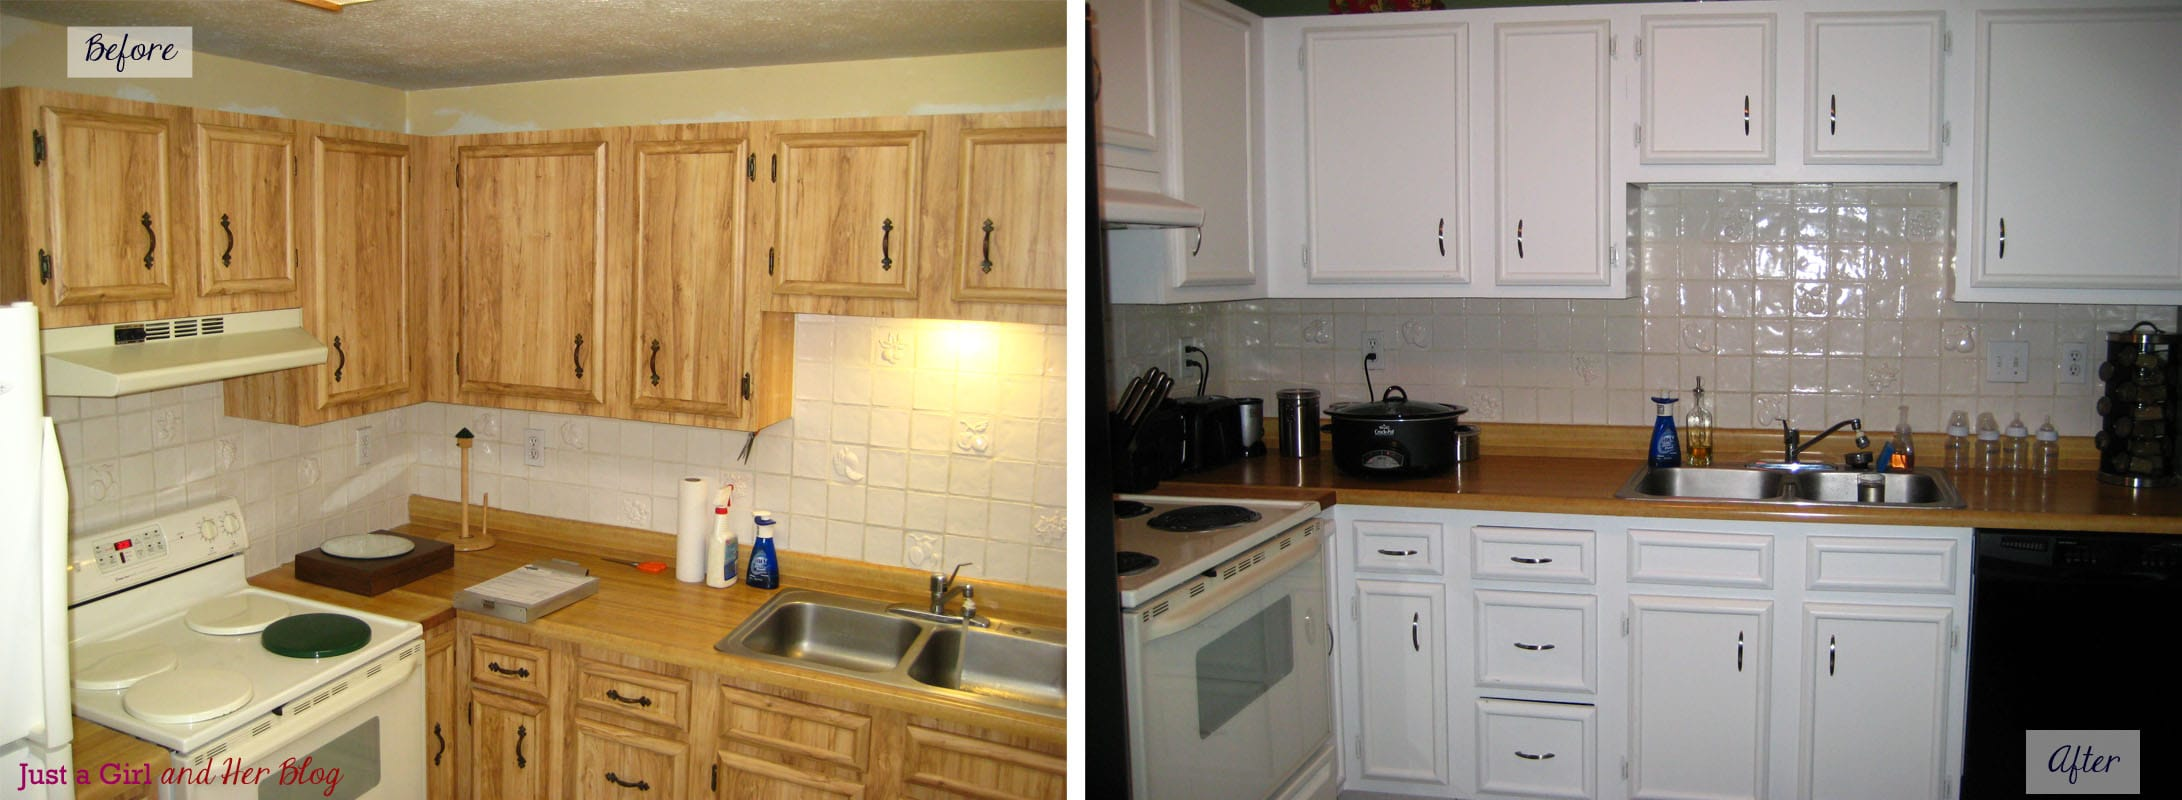 Painted kitchen cabinets before and after for Painting kitchen cabinets